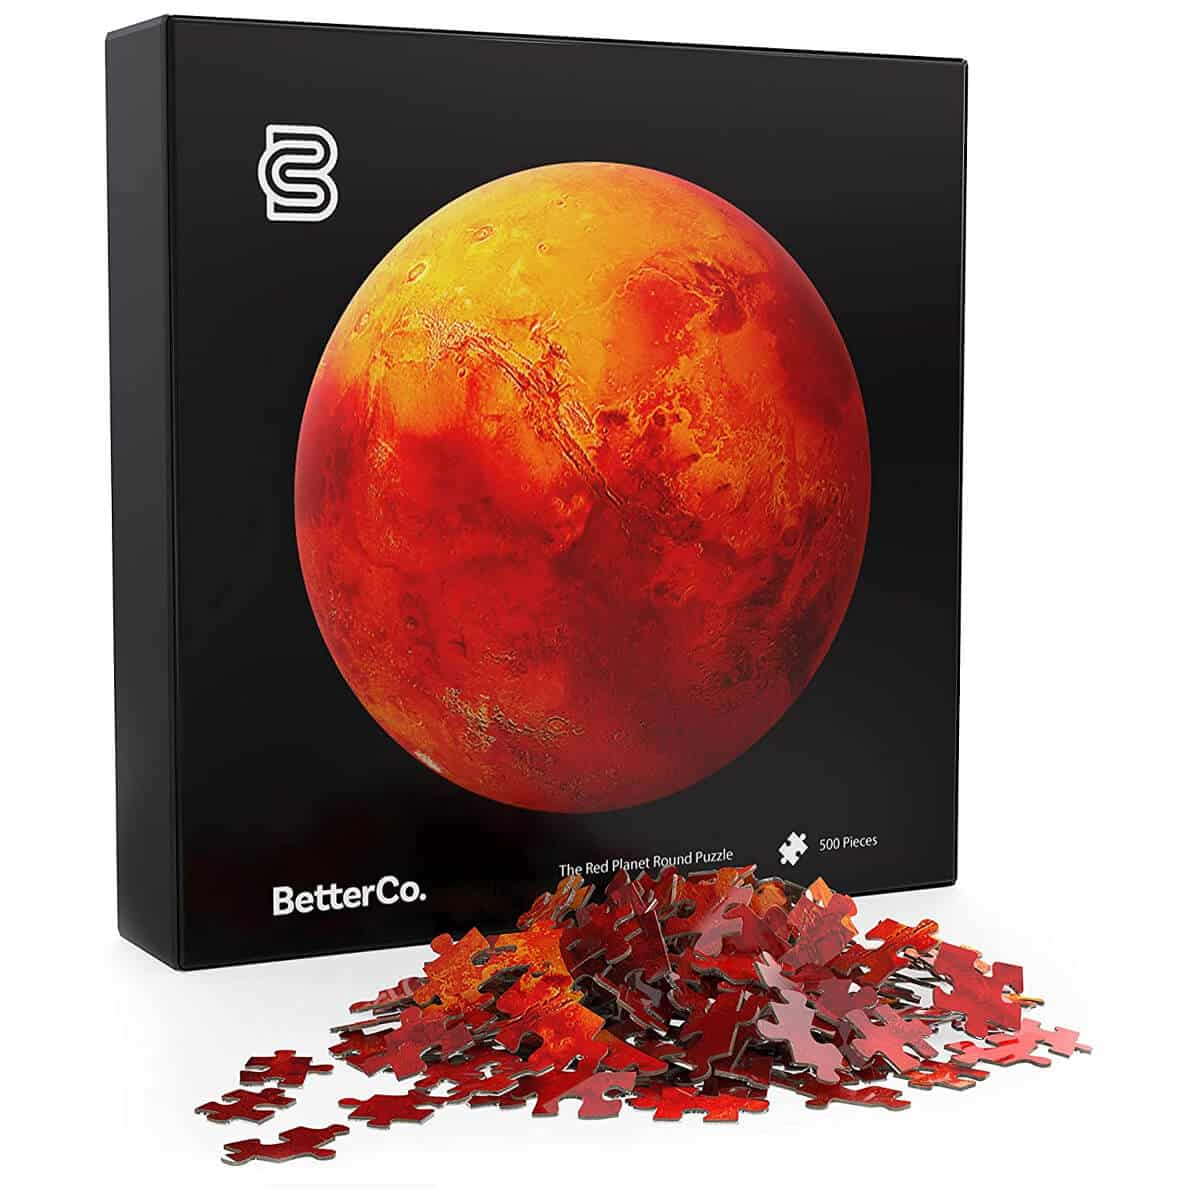 BetterCo. - The Red Planet Mars